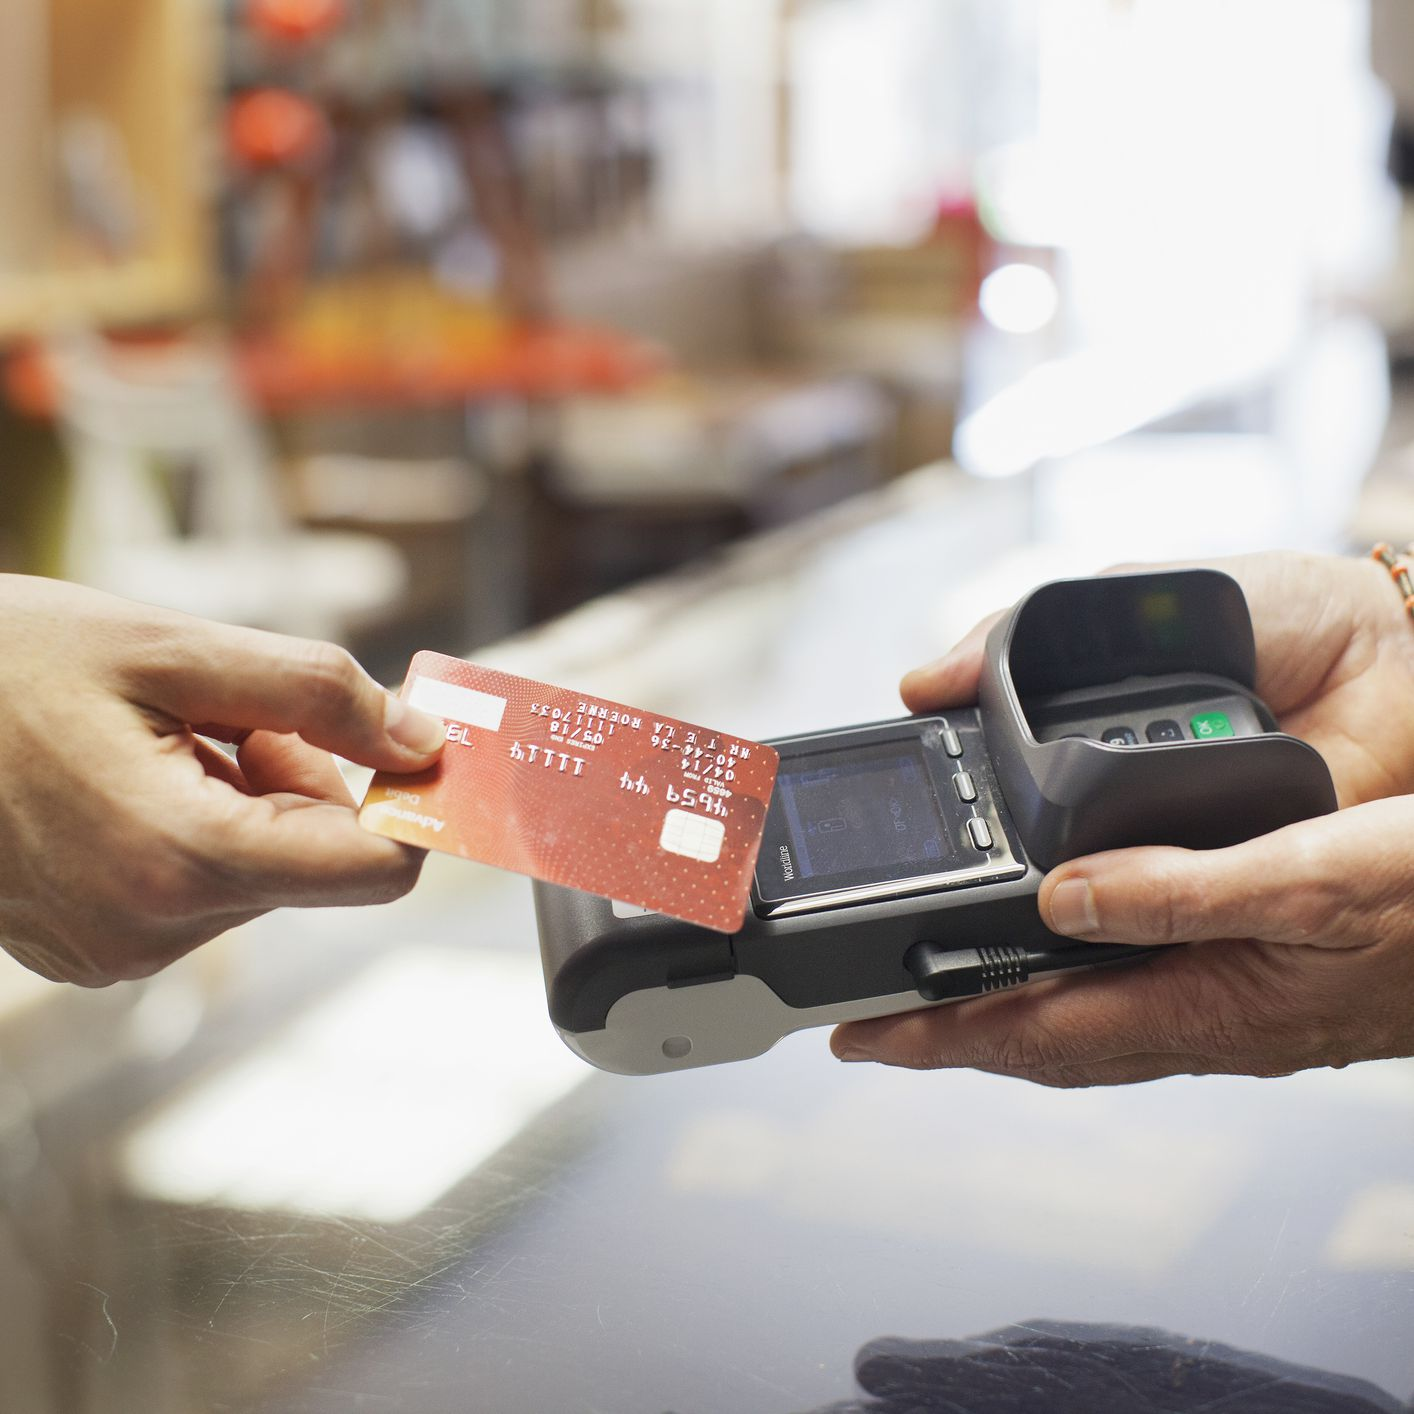 5 Credit Card Scams to Watch Out For